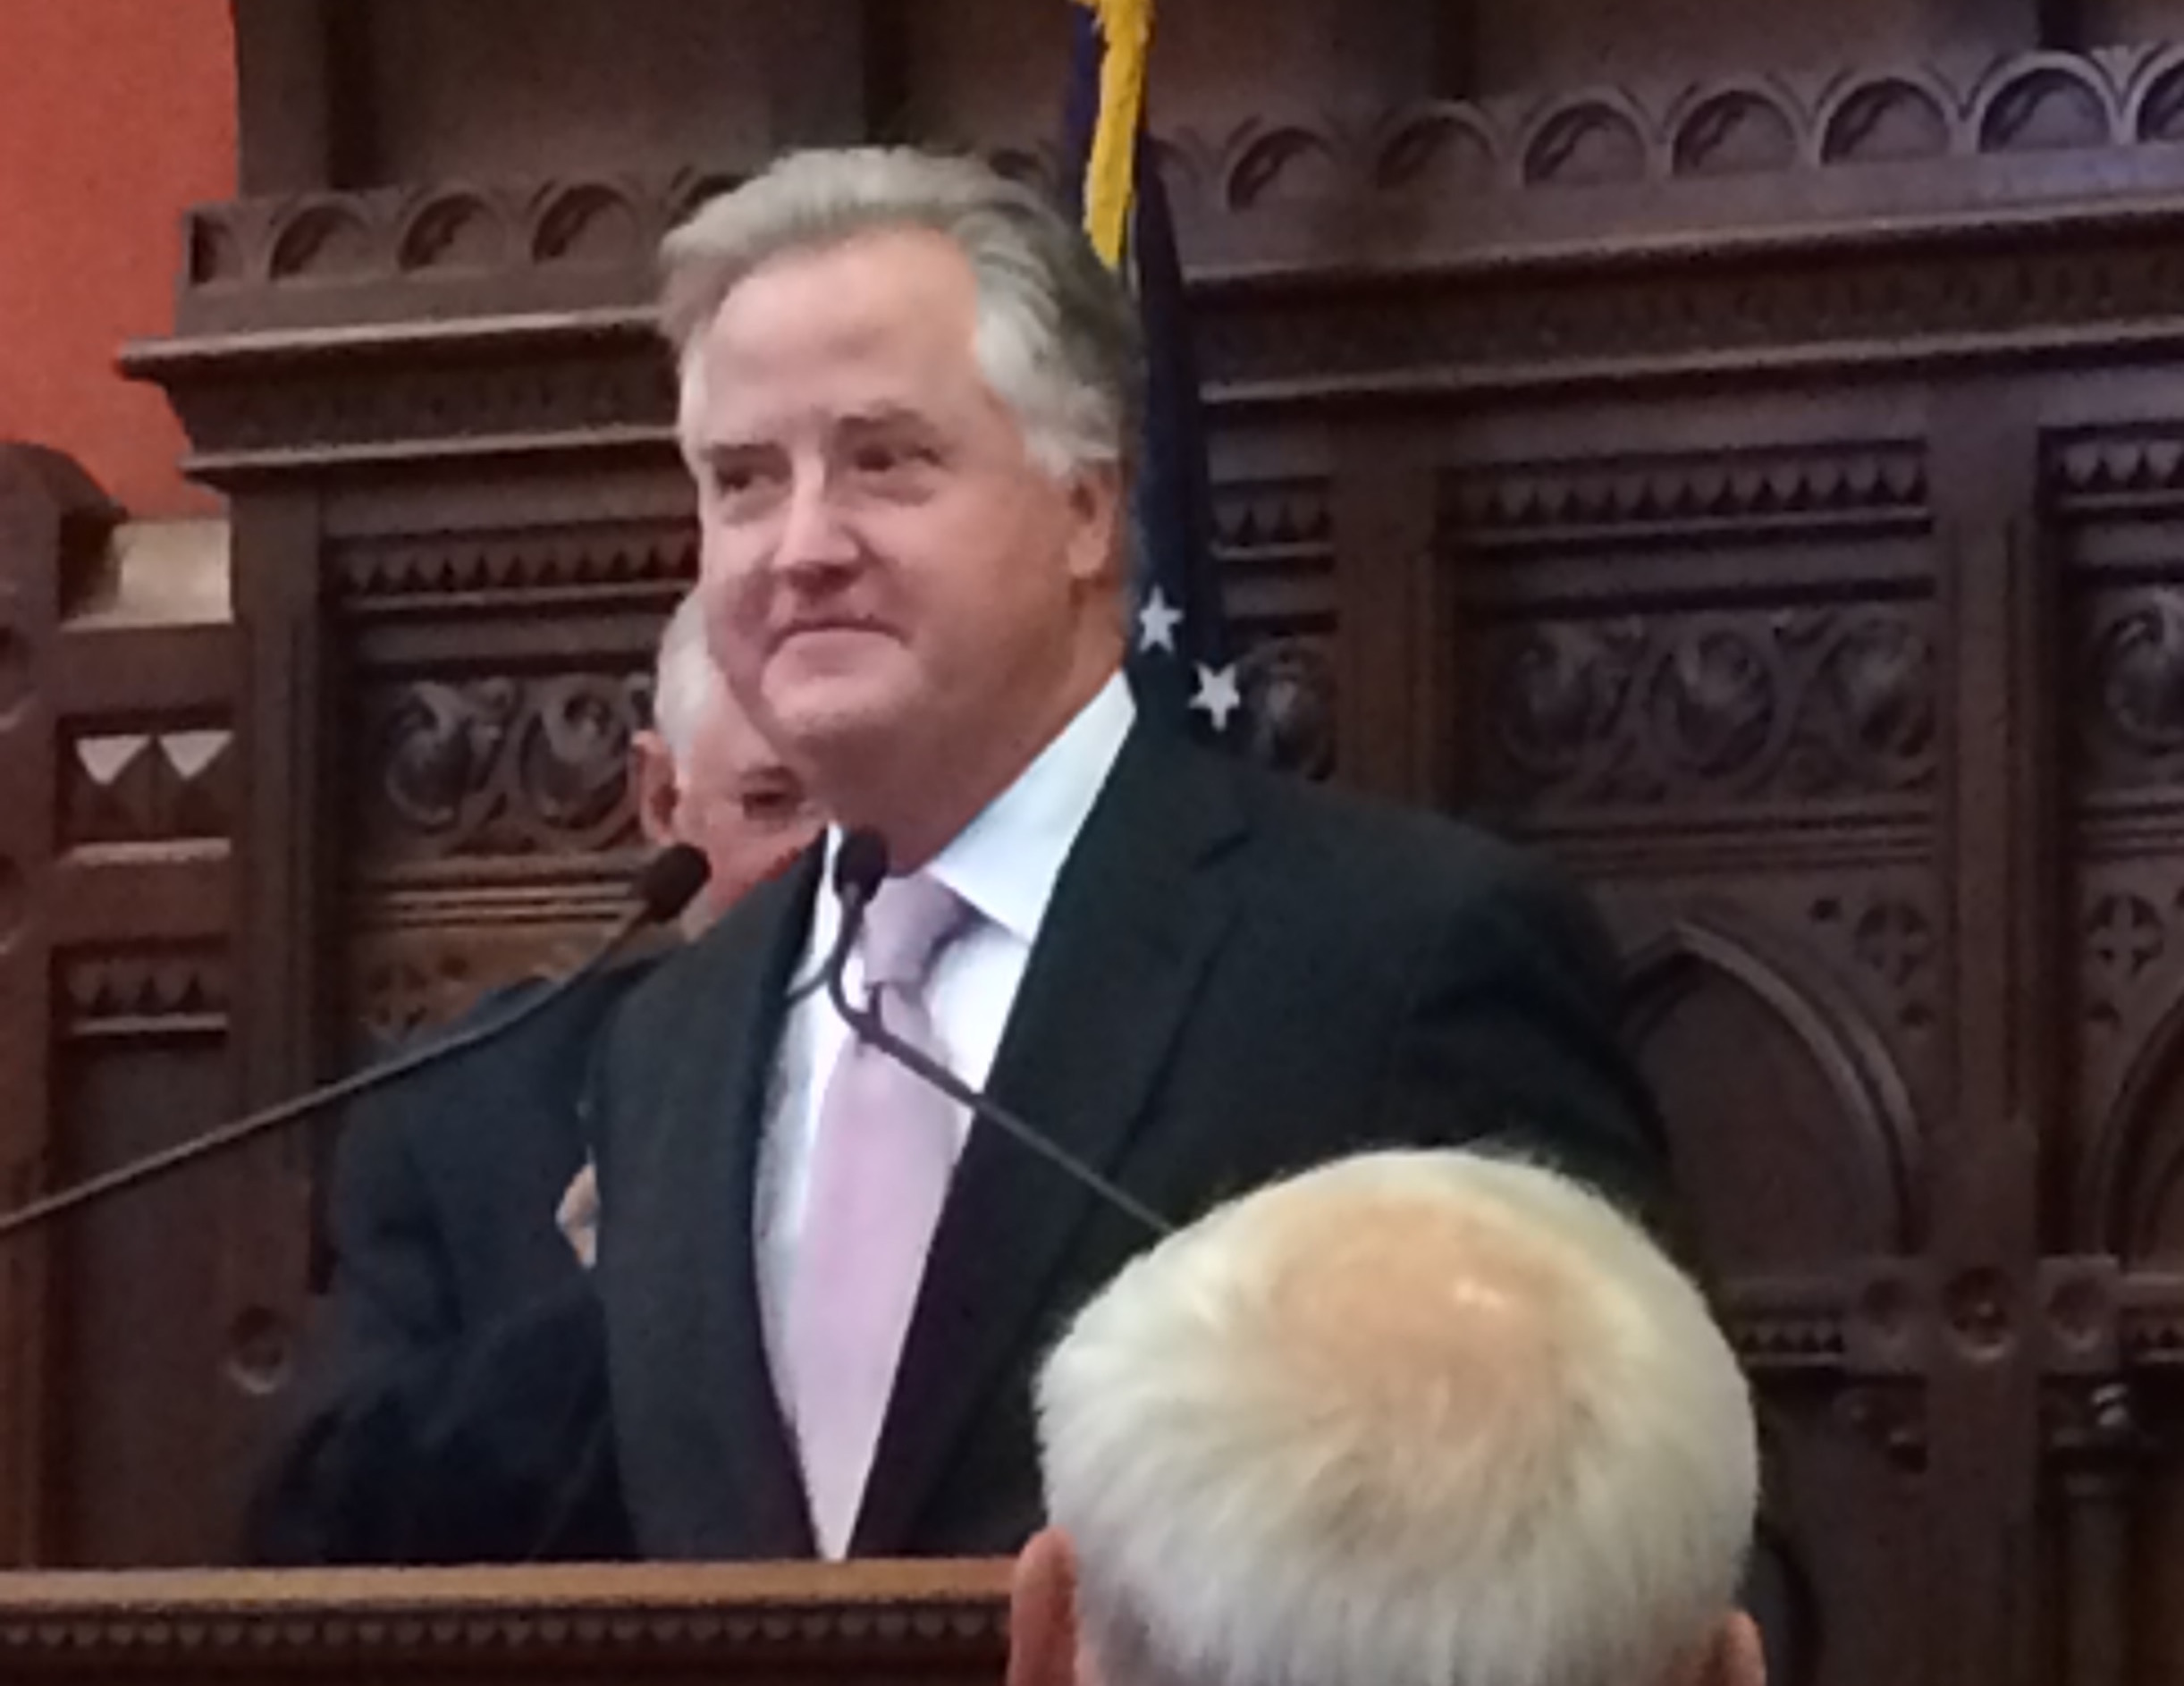 CT House gives retiring speaker Sharkey a video sendoff